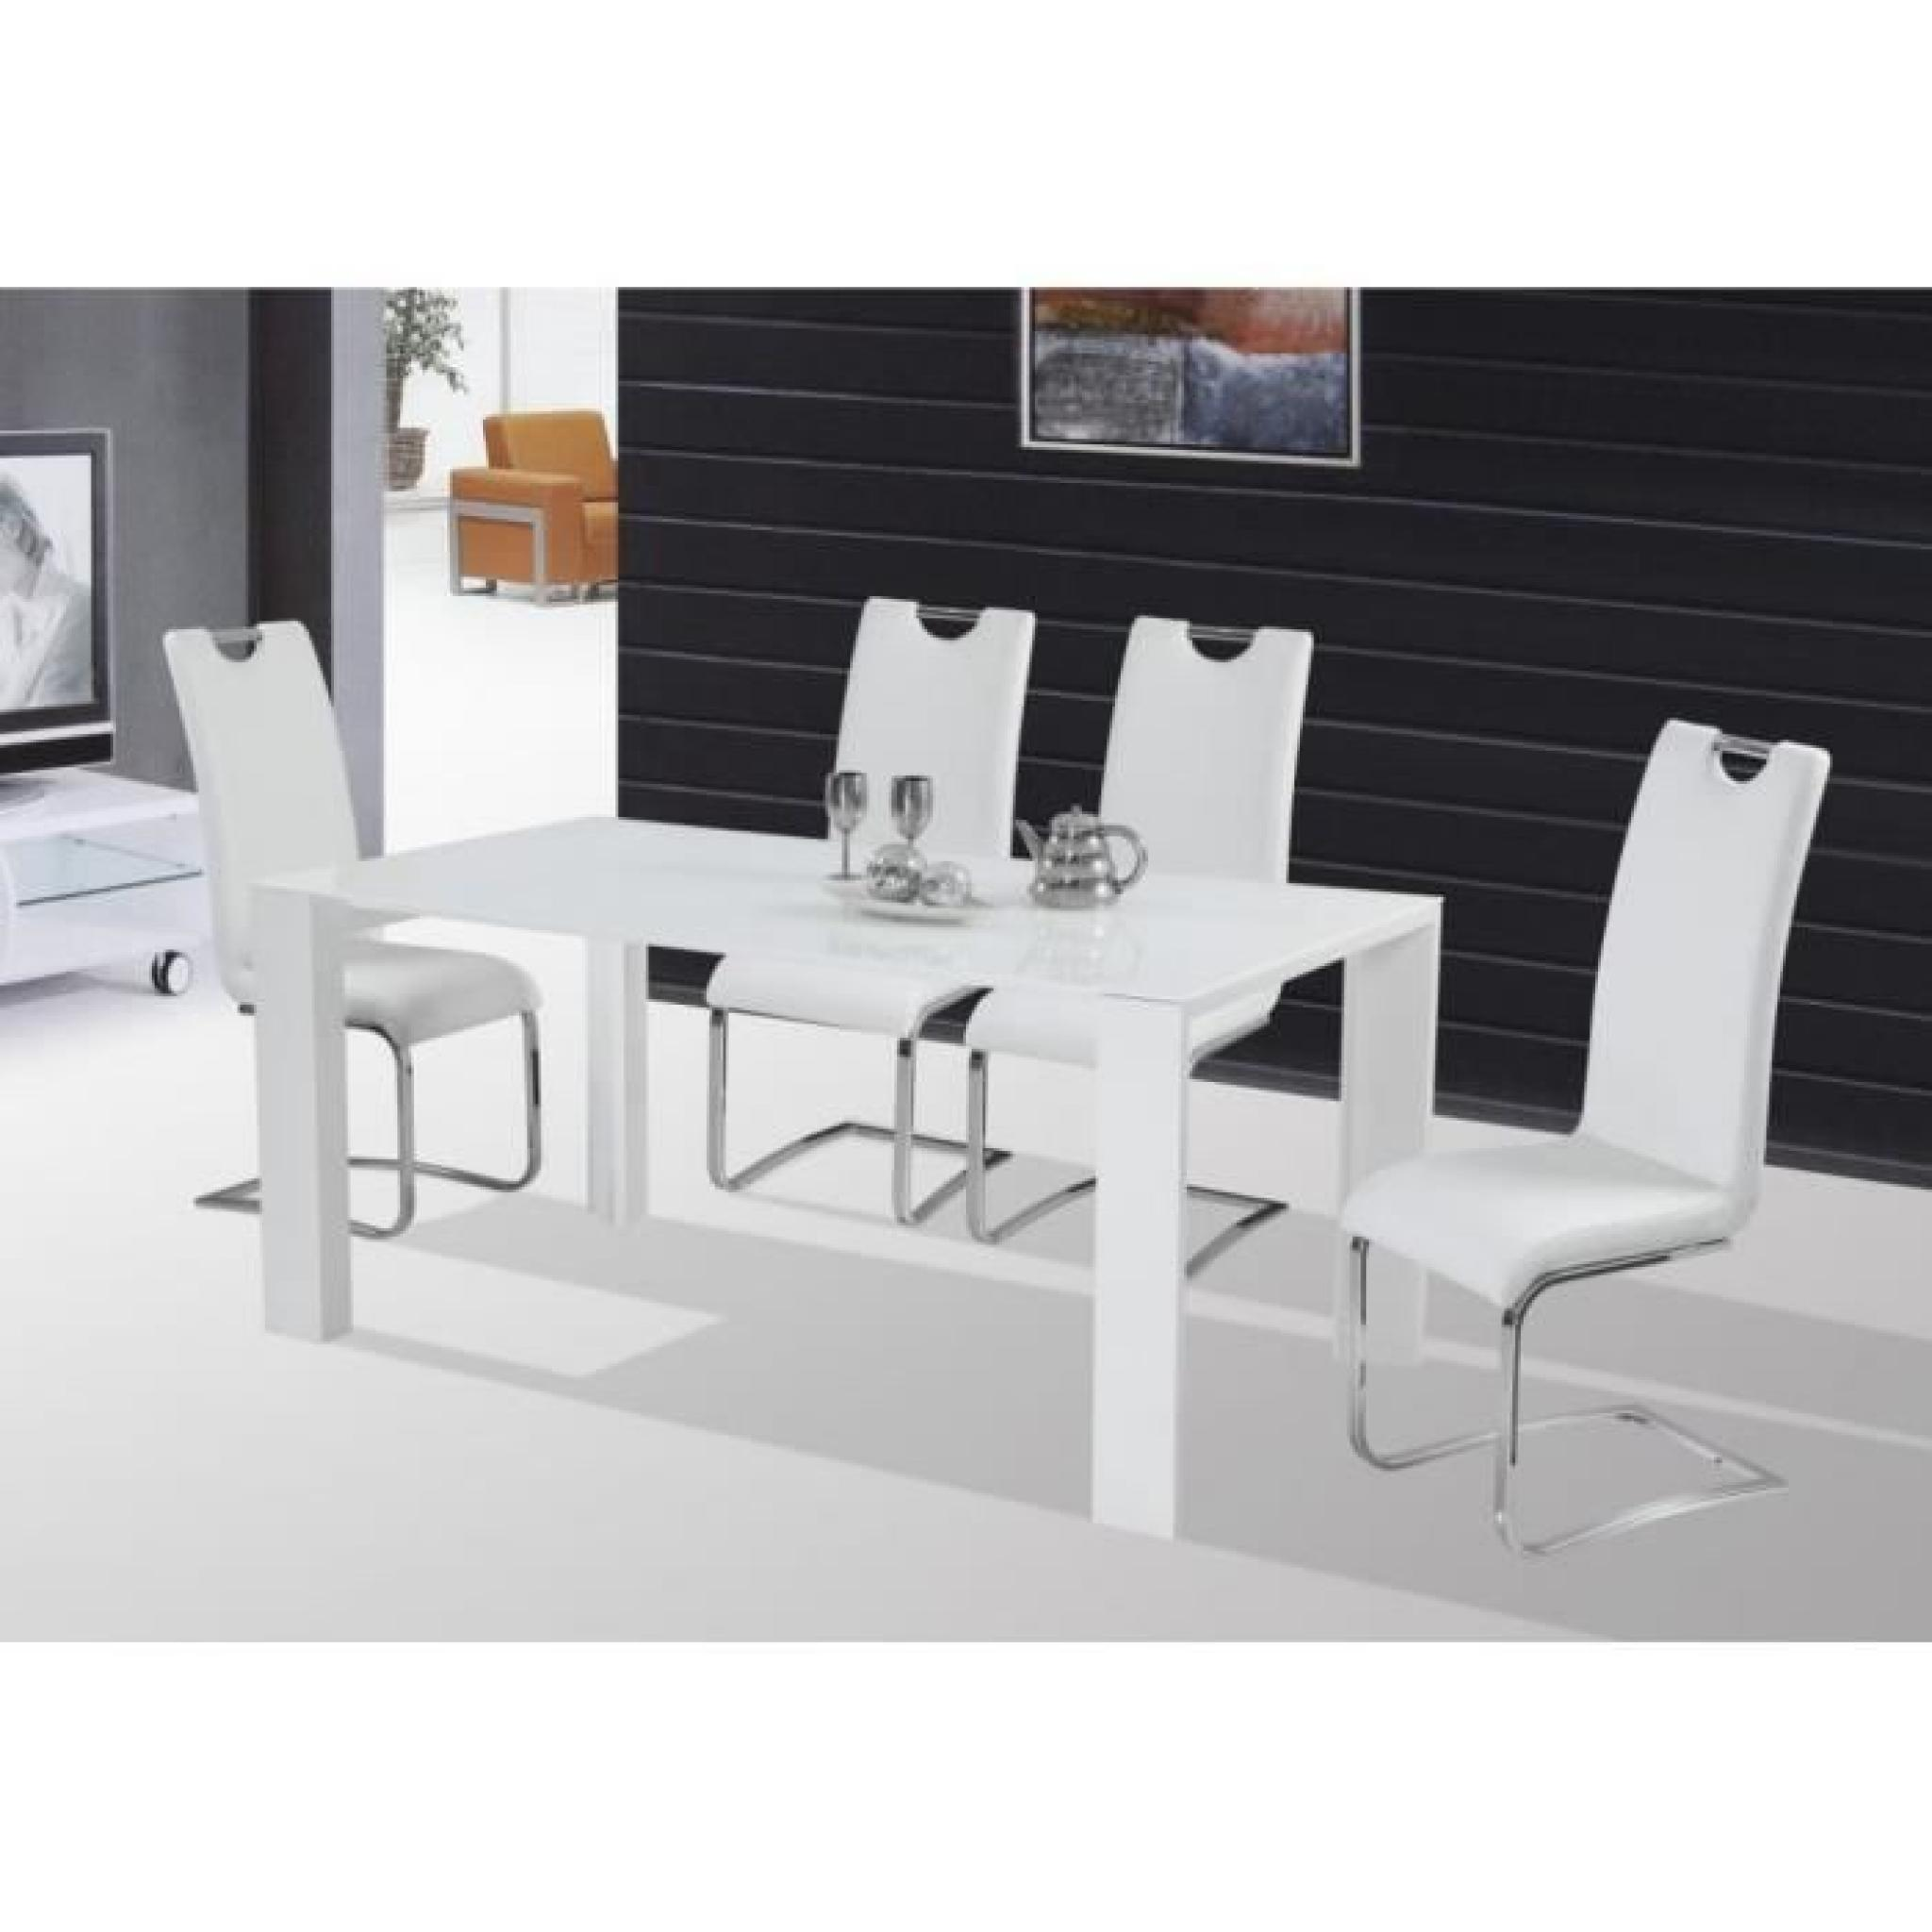 table de salle manger jonas blanc laqu haute brillance. Black Bedroom Furniture Sets. Home Design Ideas